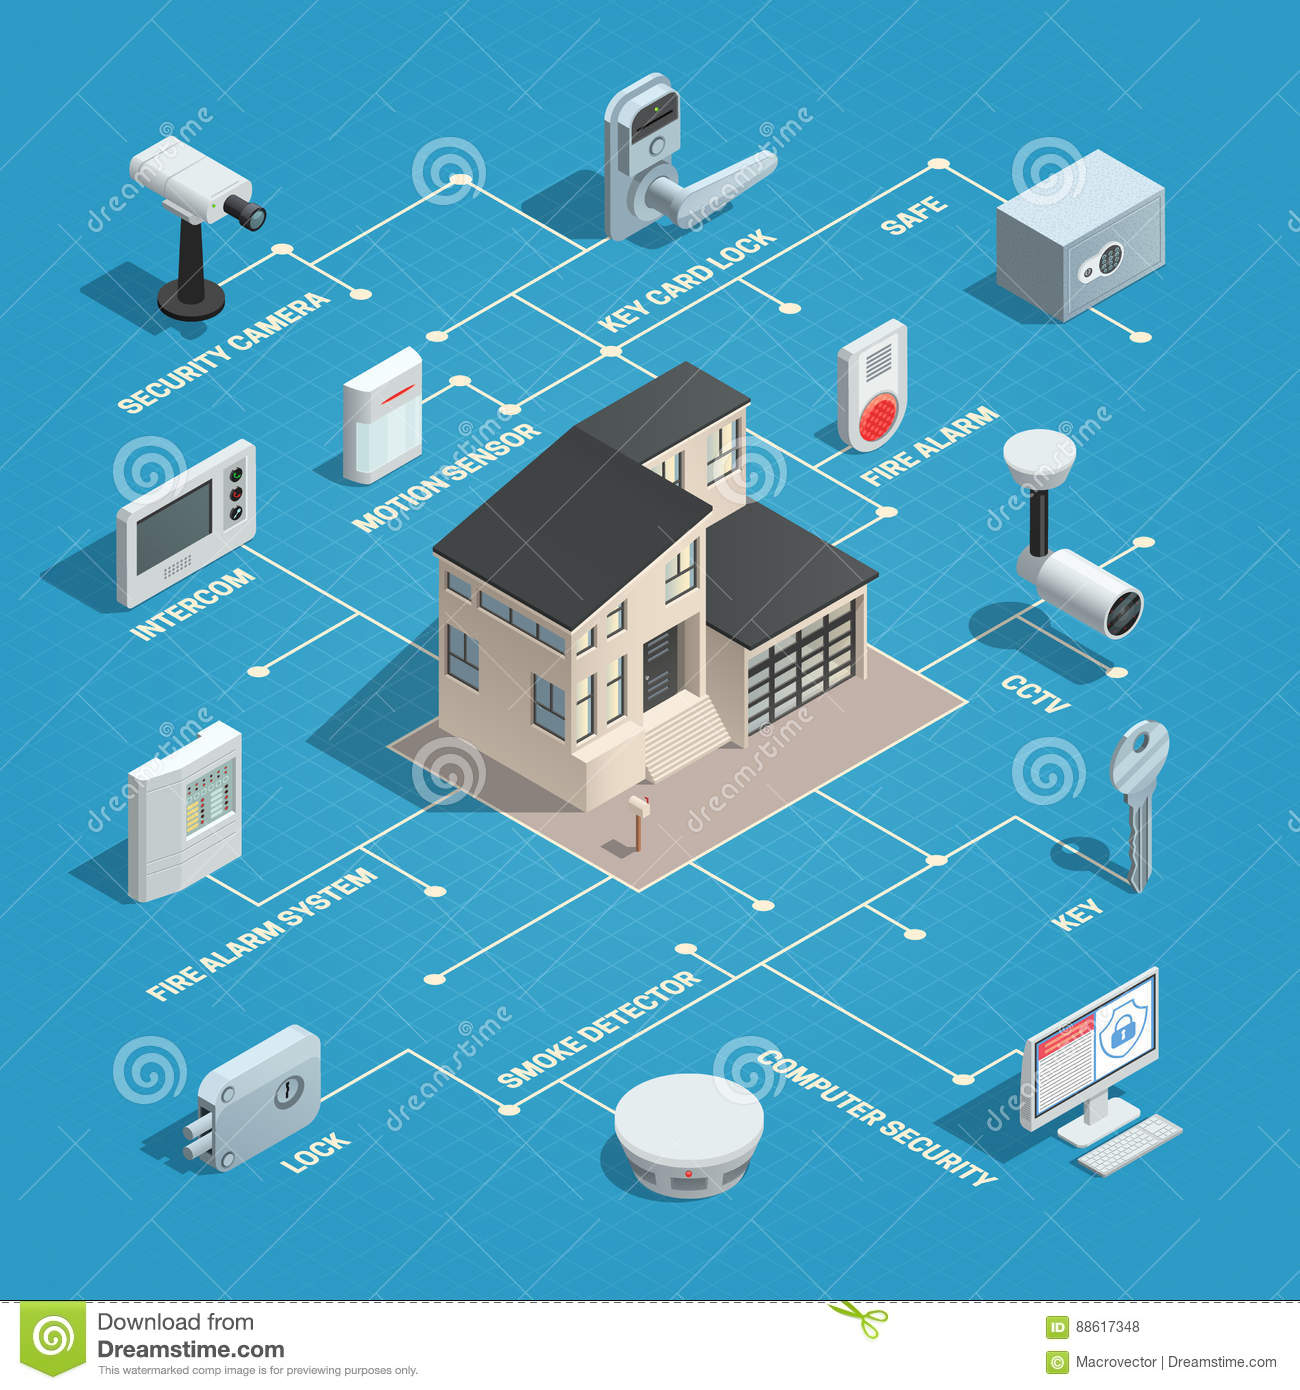 grand marquis wiring diagram security physical security isometric flowchart stock vector ... physical security diagram